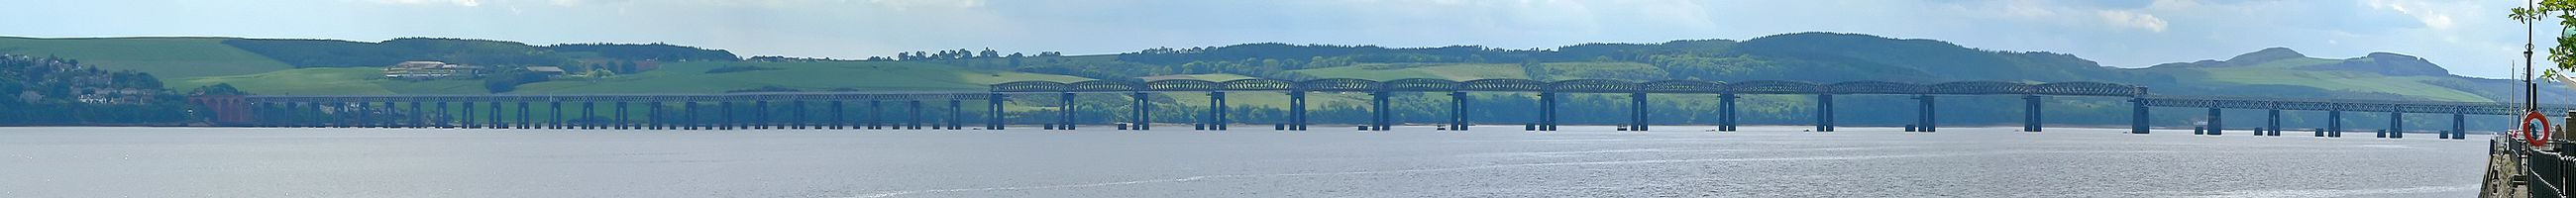 Tay Rail Bridge 2005-06-14 (full length).jpg